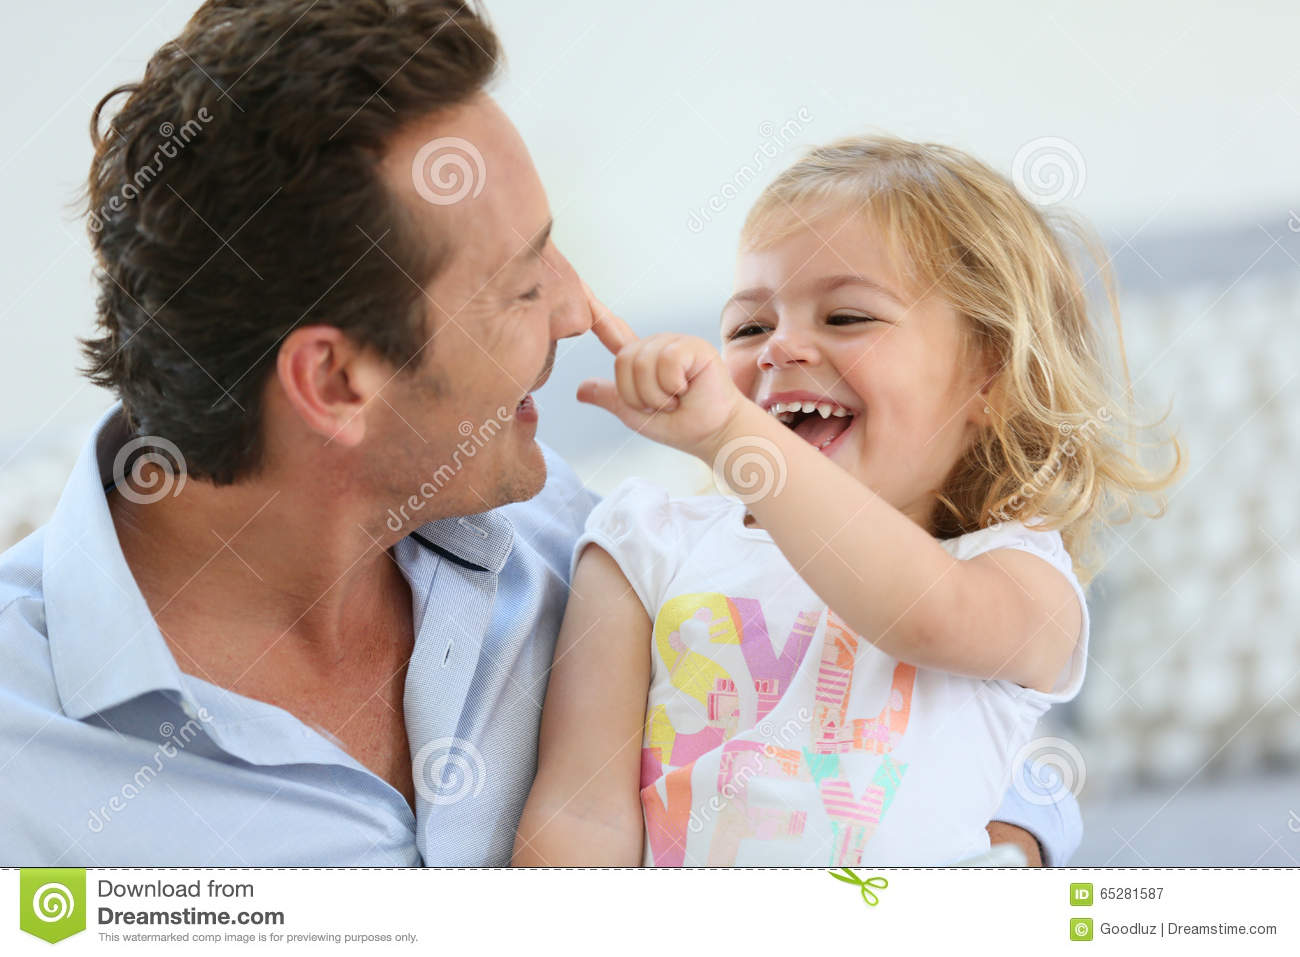 Daddys Little Girl Stock Images Download 11574 Royalty Free Photos